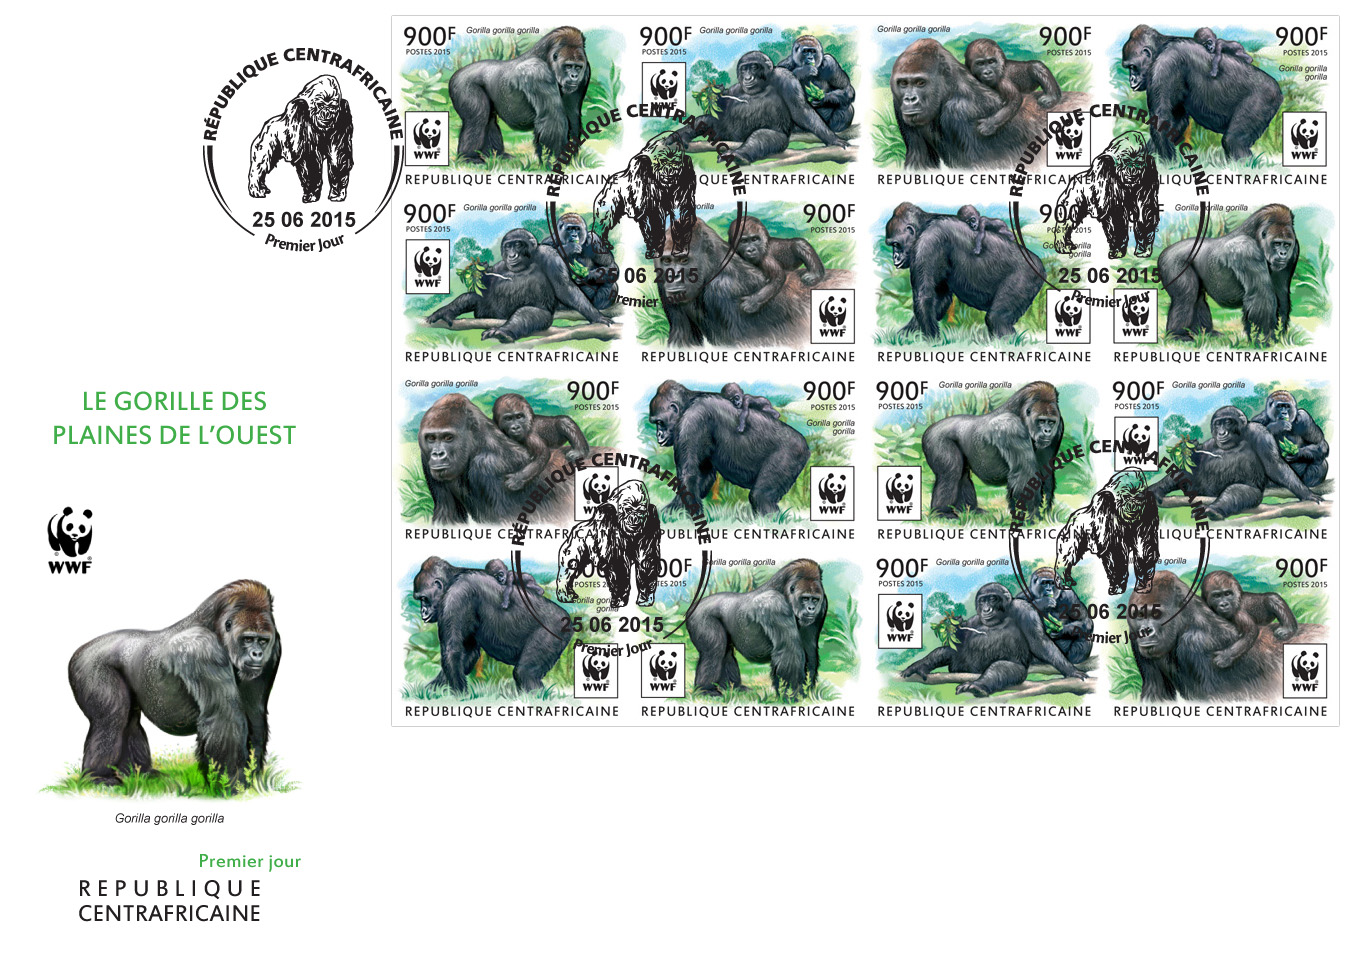 WWF – Gorilla (FDC imperf.) - Issue of Central African republic postage stamps